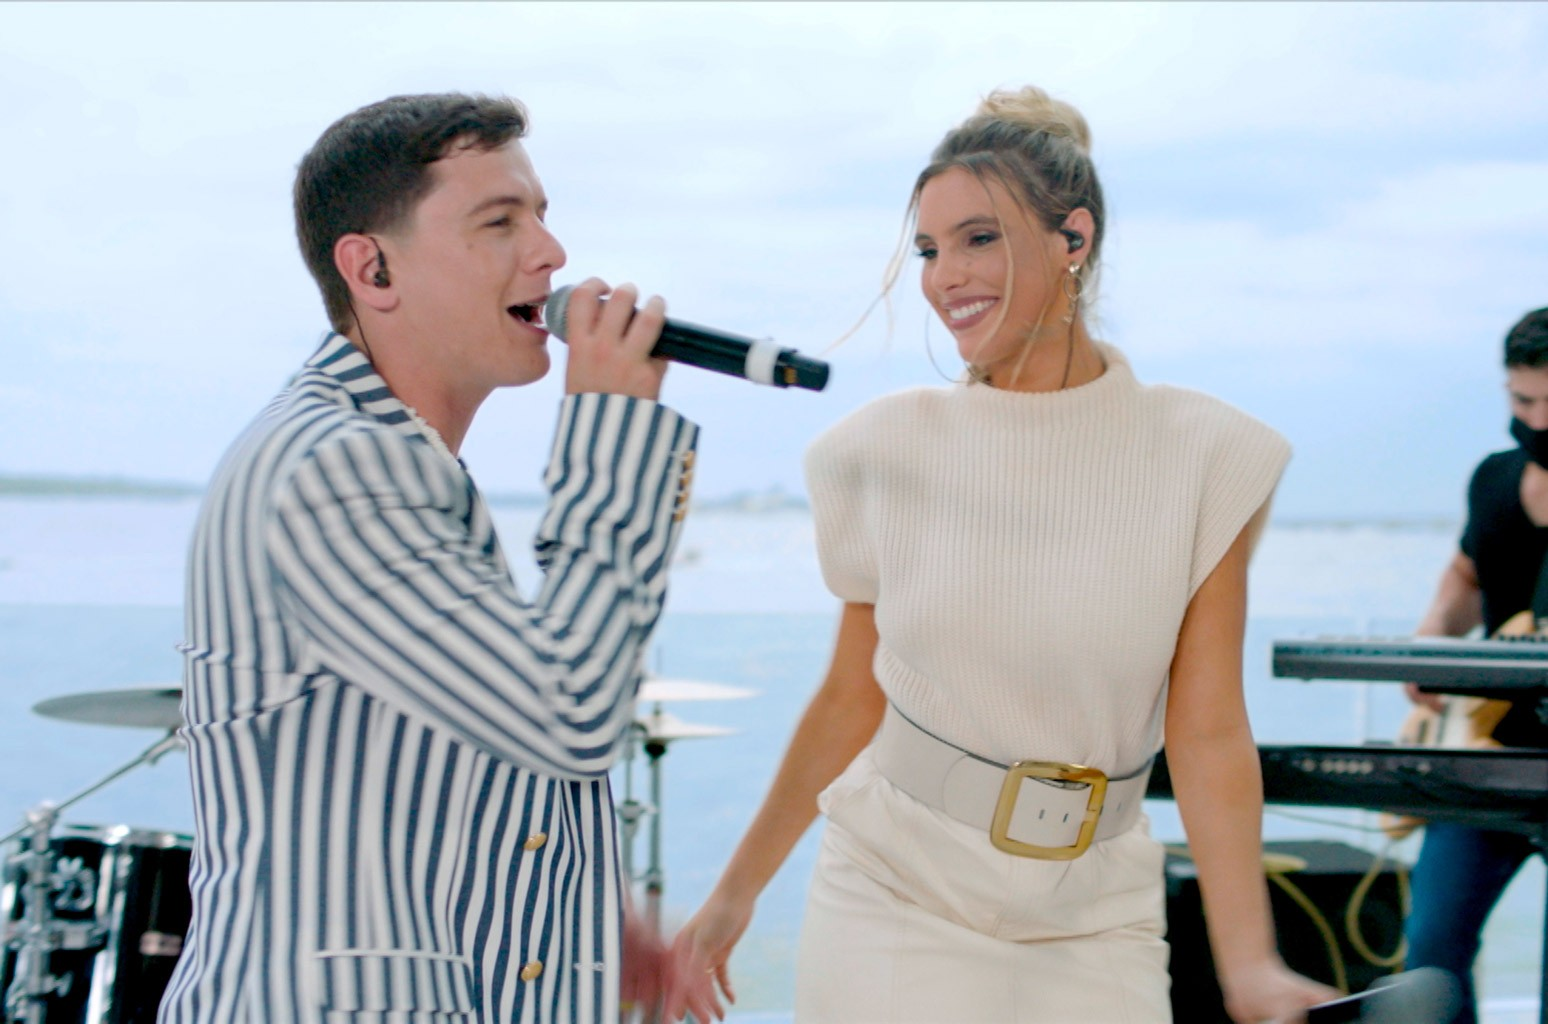 From Lele Pons & Guaynaa to Christian Nodal & Belinda, Vote for Your Favorite Latin Couple of 2020